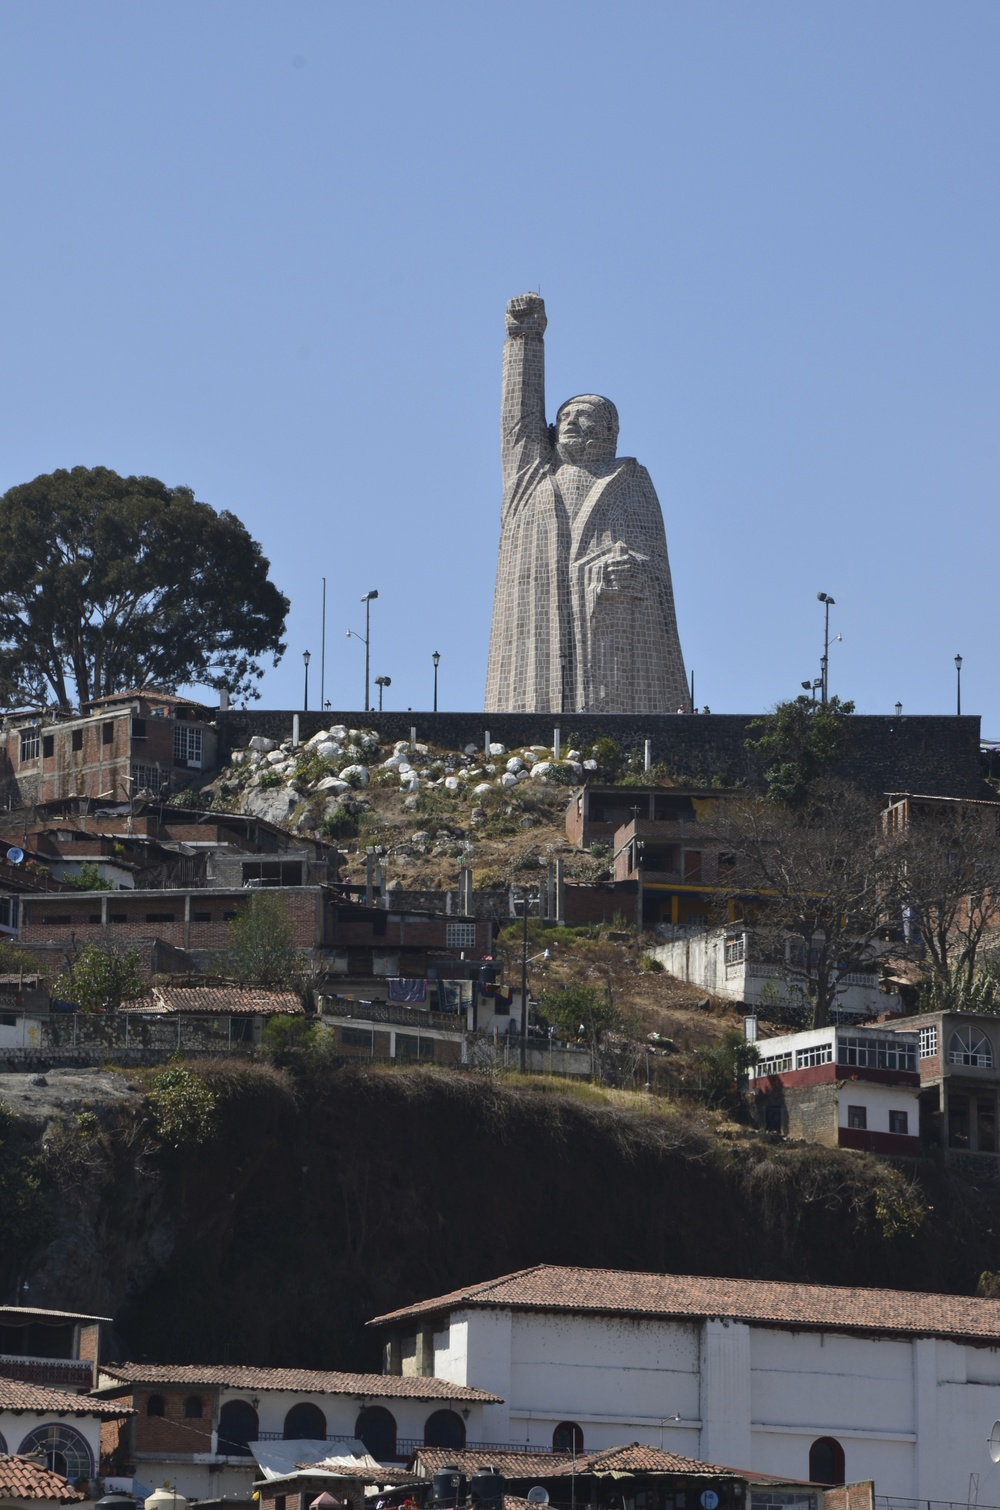 A 40 meter high monument of Jose Maria Morelos, a great hero of Mexico's independence its atop of the Island.